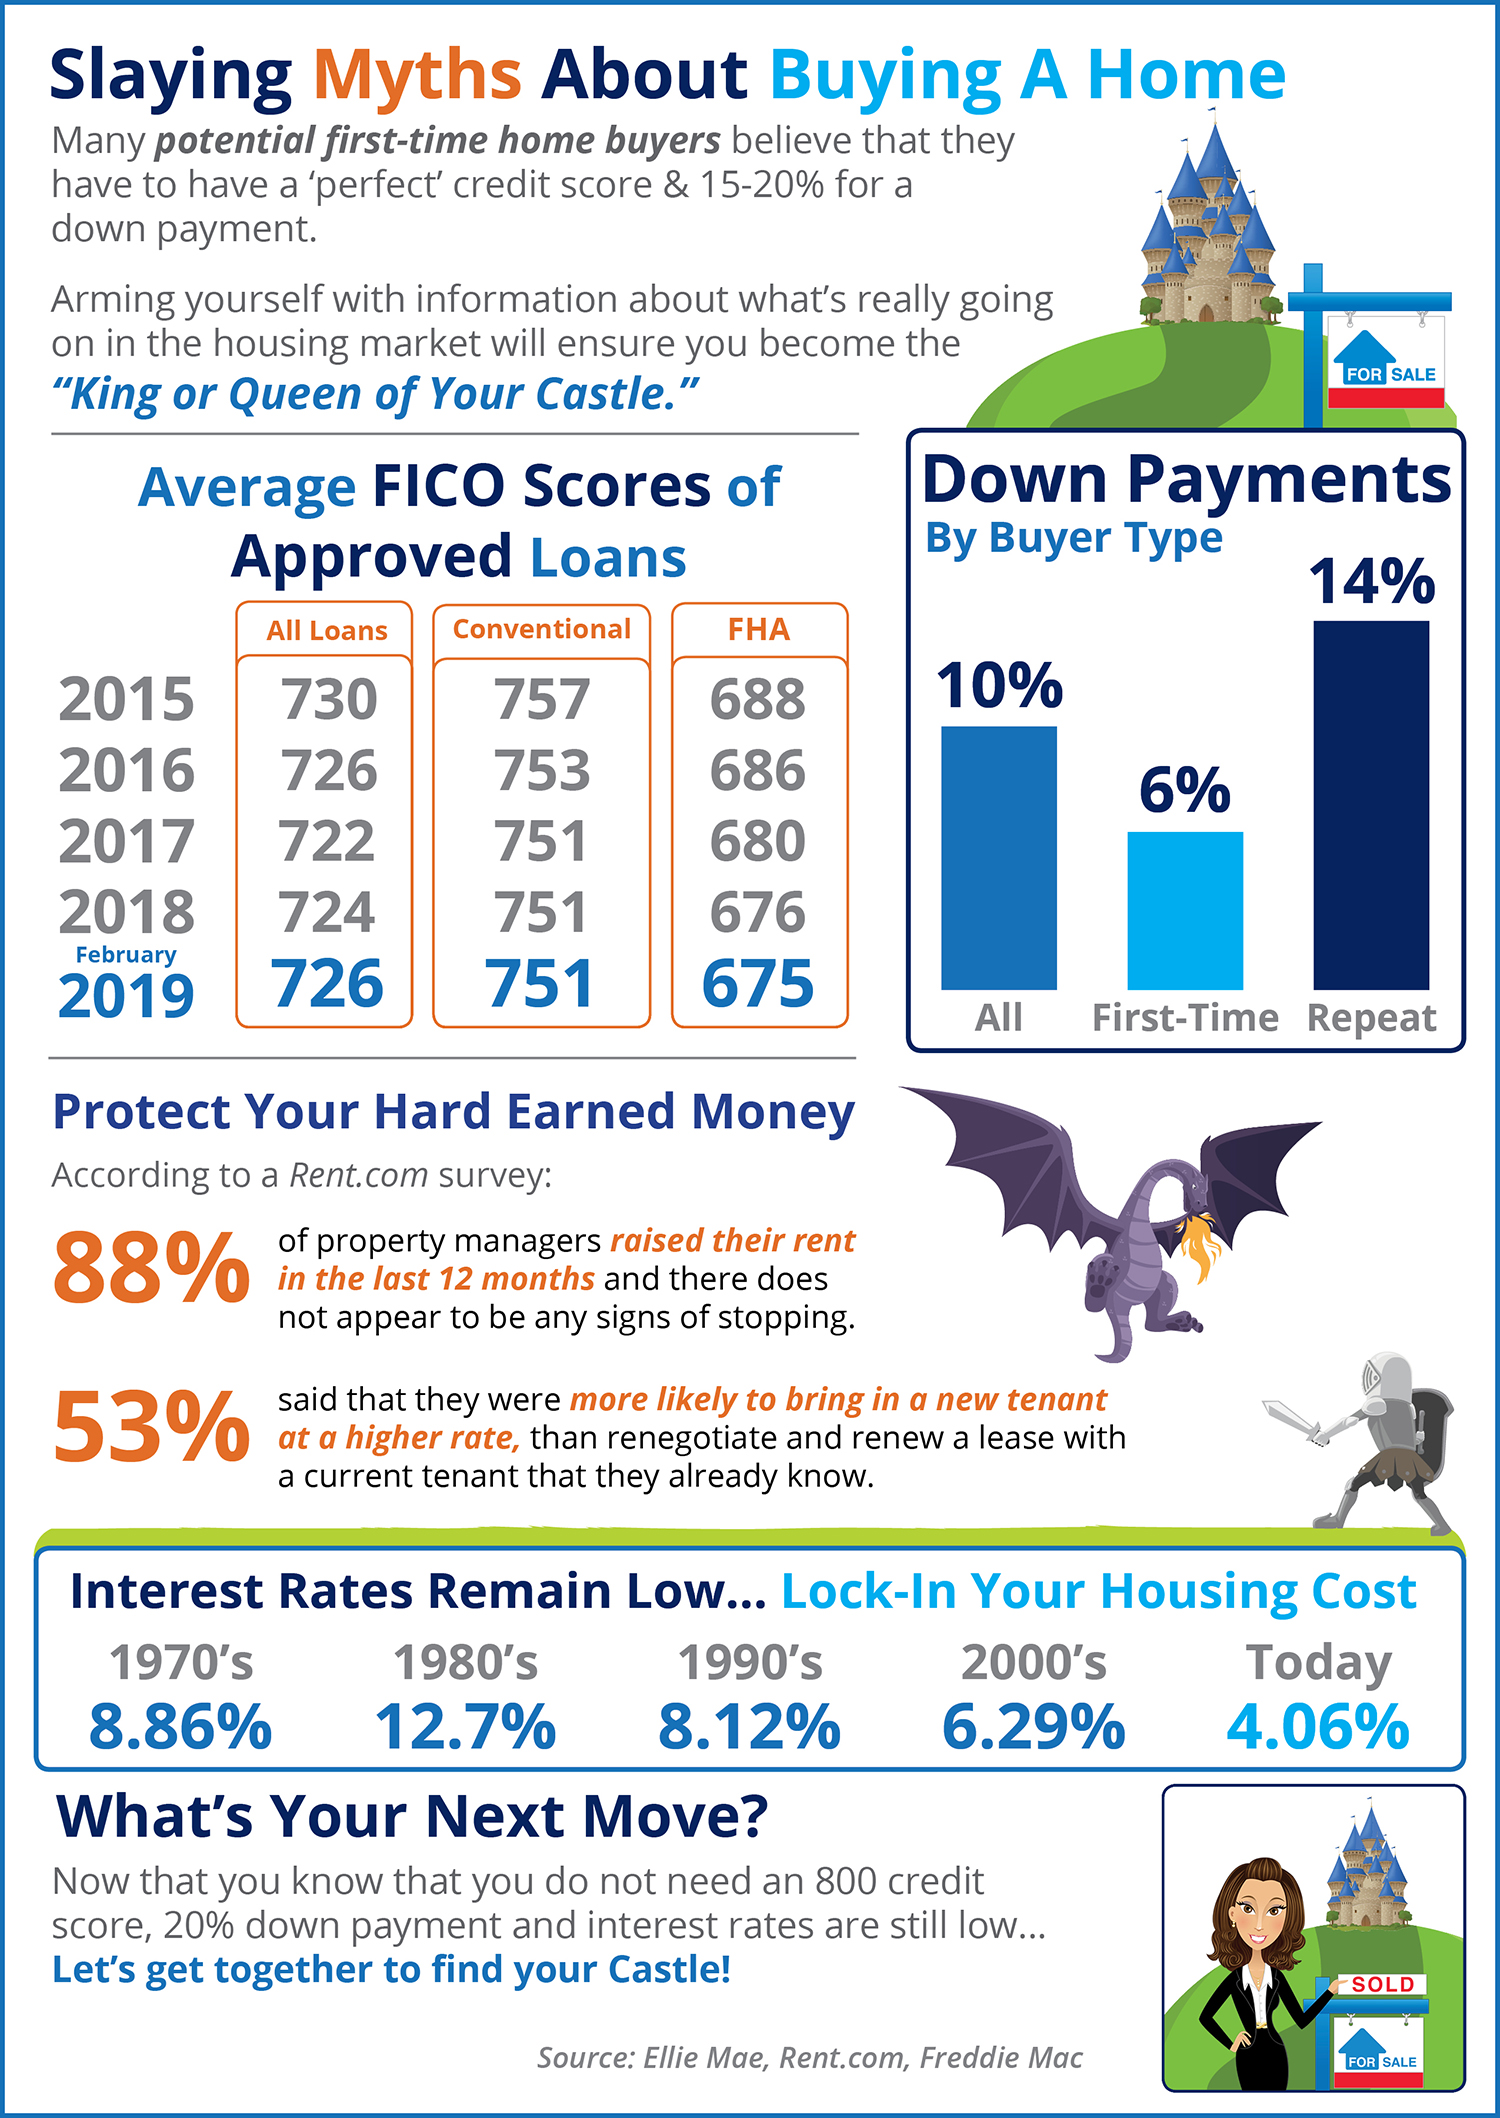 Slaying the Largest Homebuying Myths Today [INFOGRAPHIC] | MyKCM